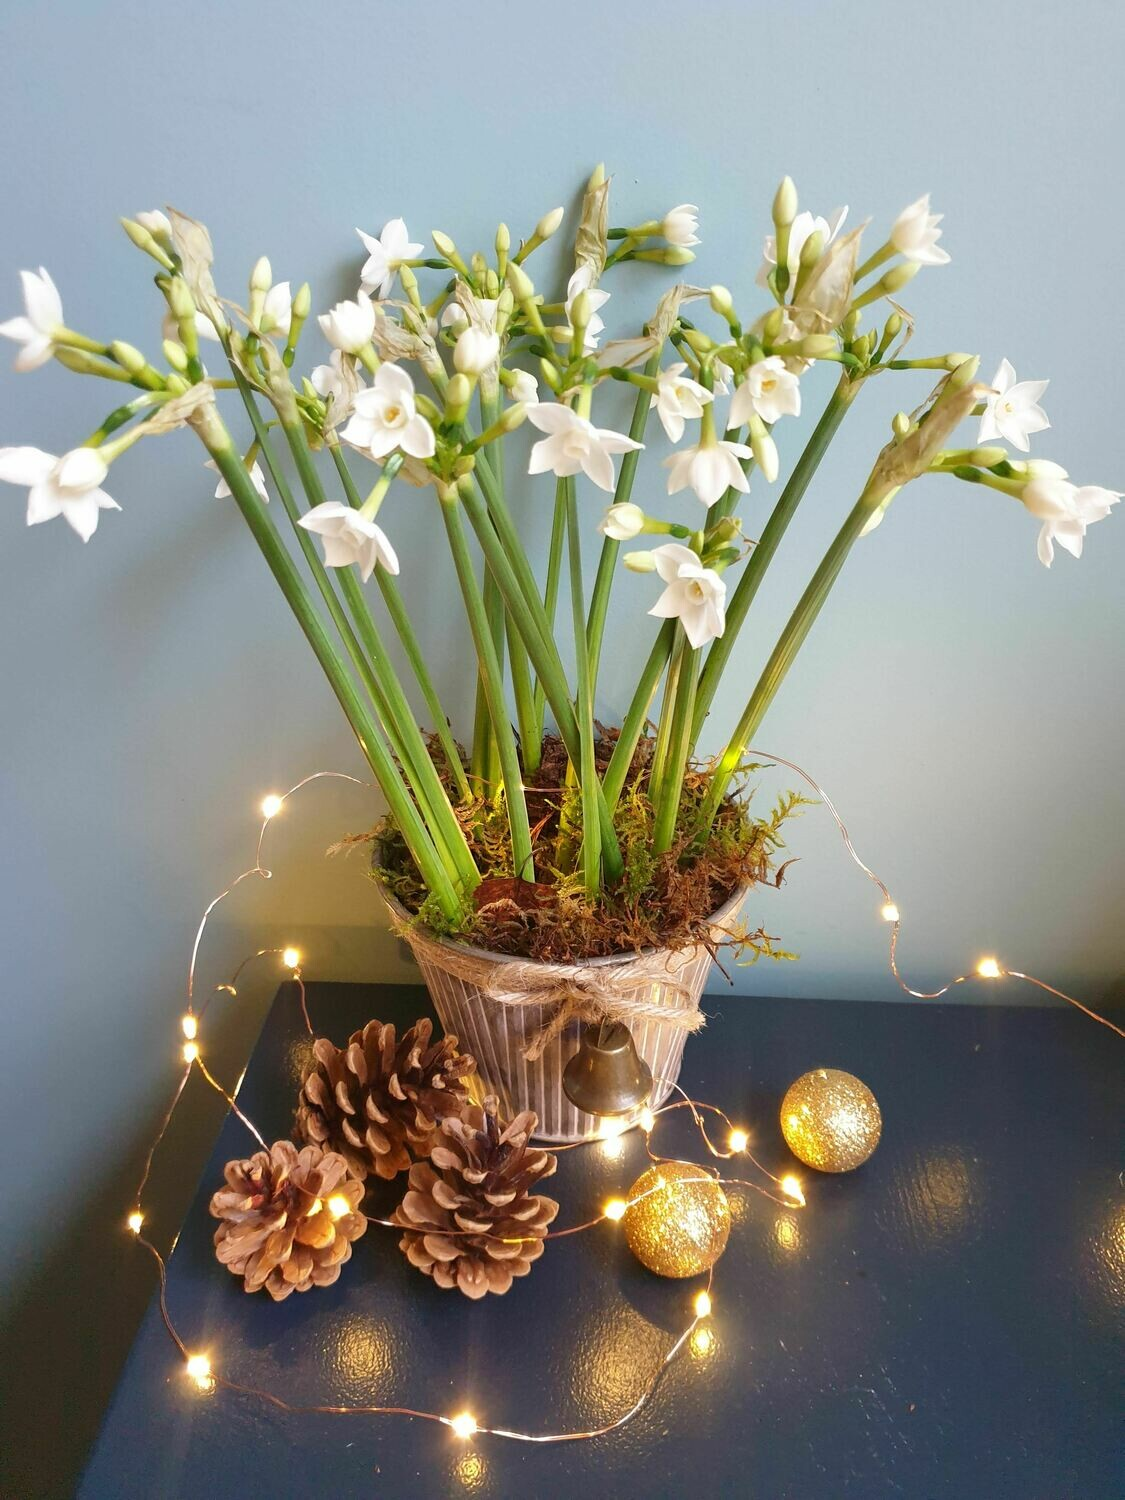 Scented narcissi planter